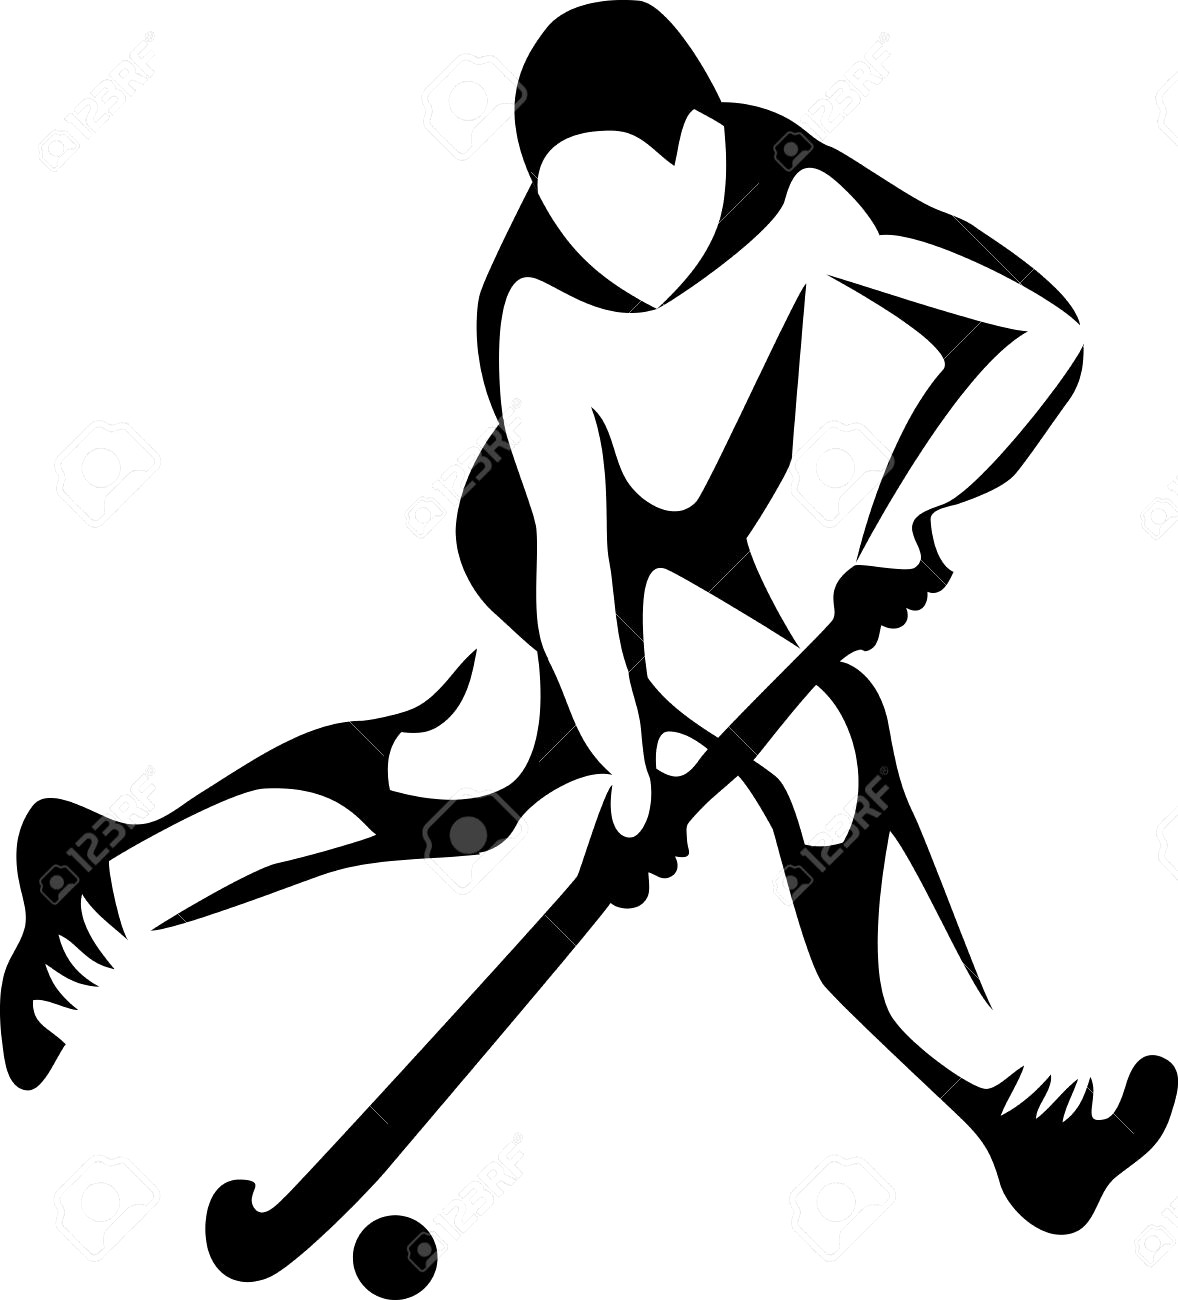 hight resolution of 1178x1300 field hockey player royalty free cliparts vectors and stock best